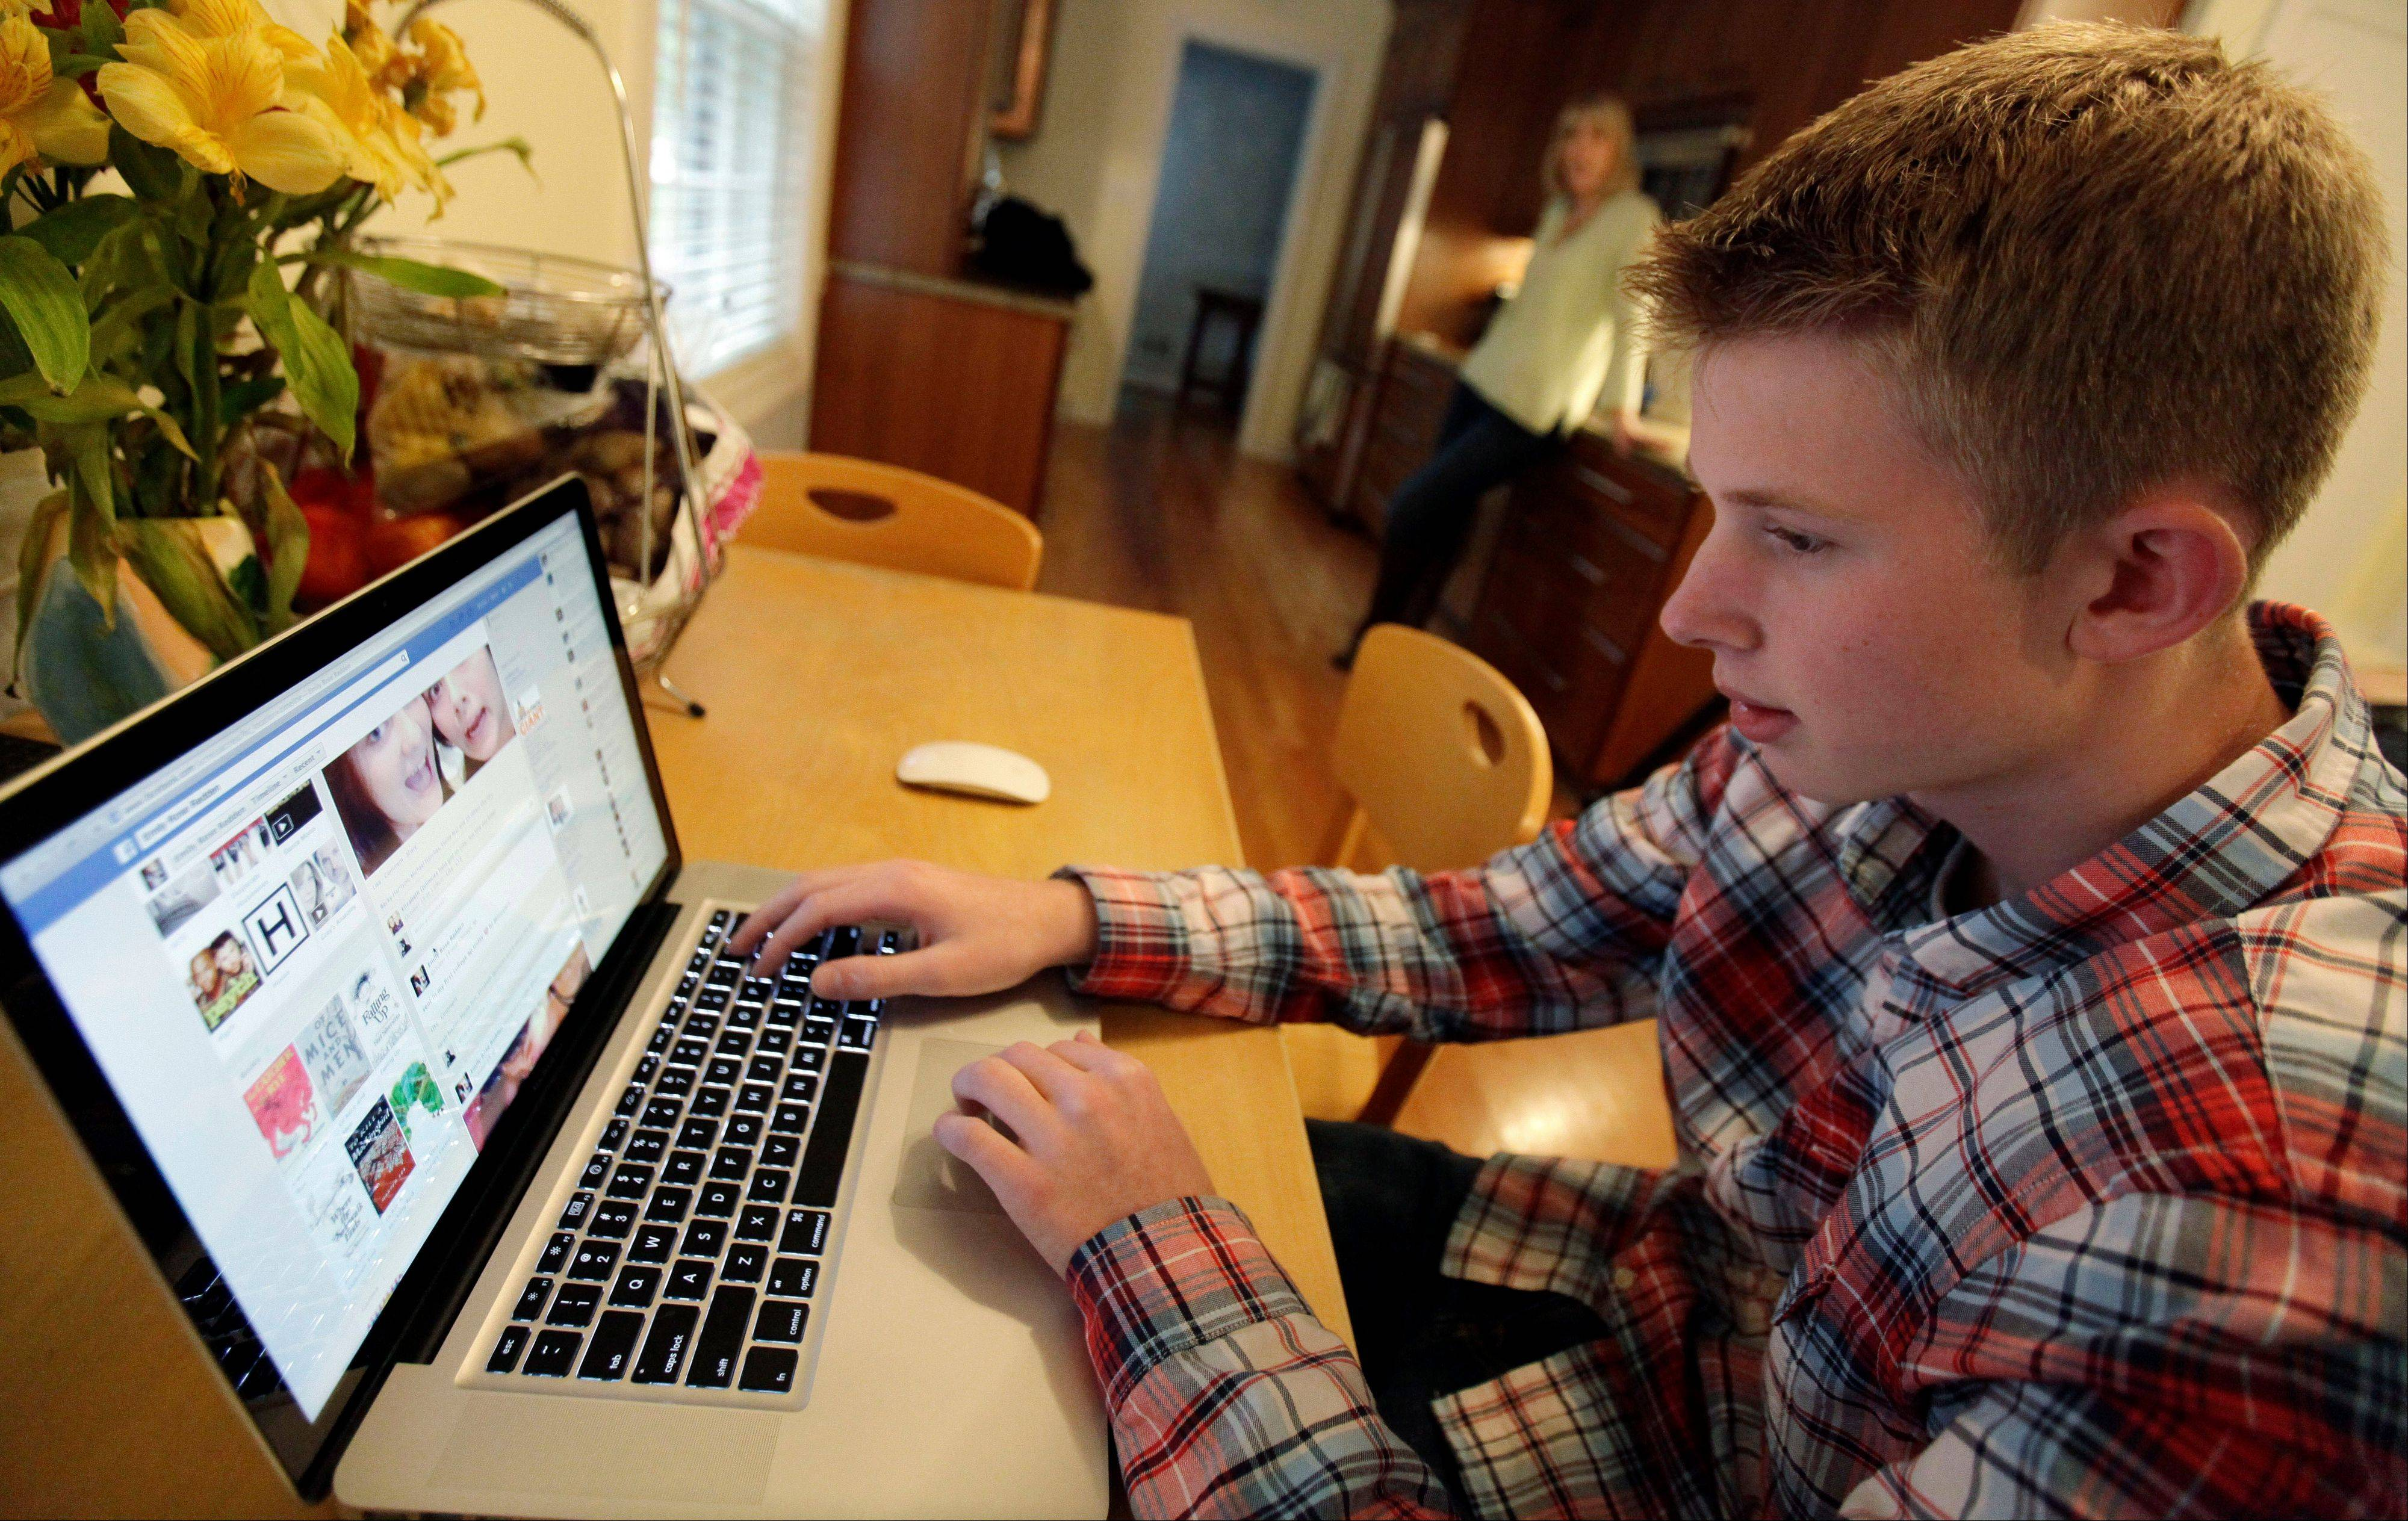 Associated Press Mark Risinger, 16, checks his Facebook page on his computer as his mother, Amy Risinger, looks on at their home in Glenview.